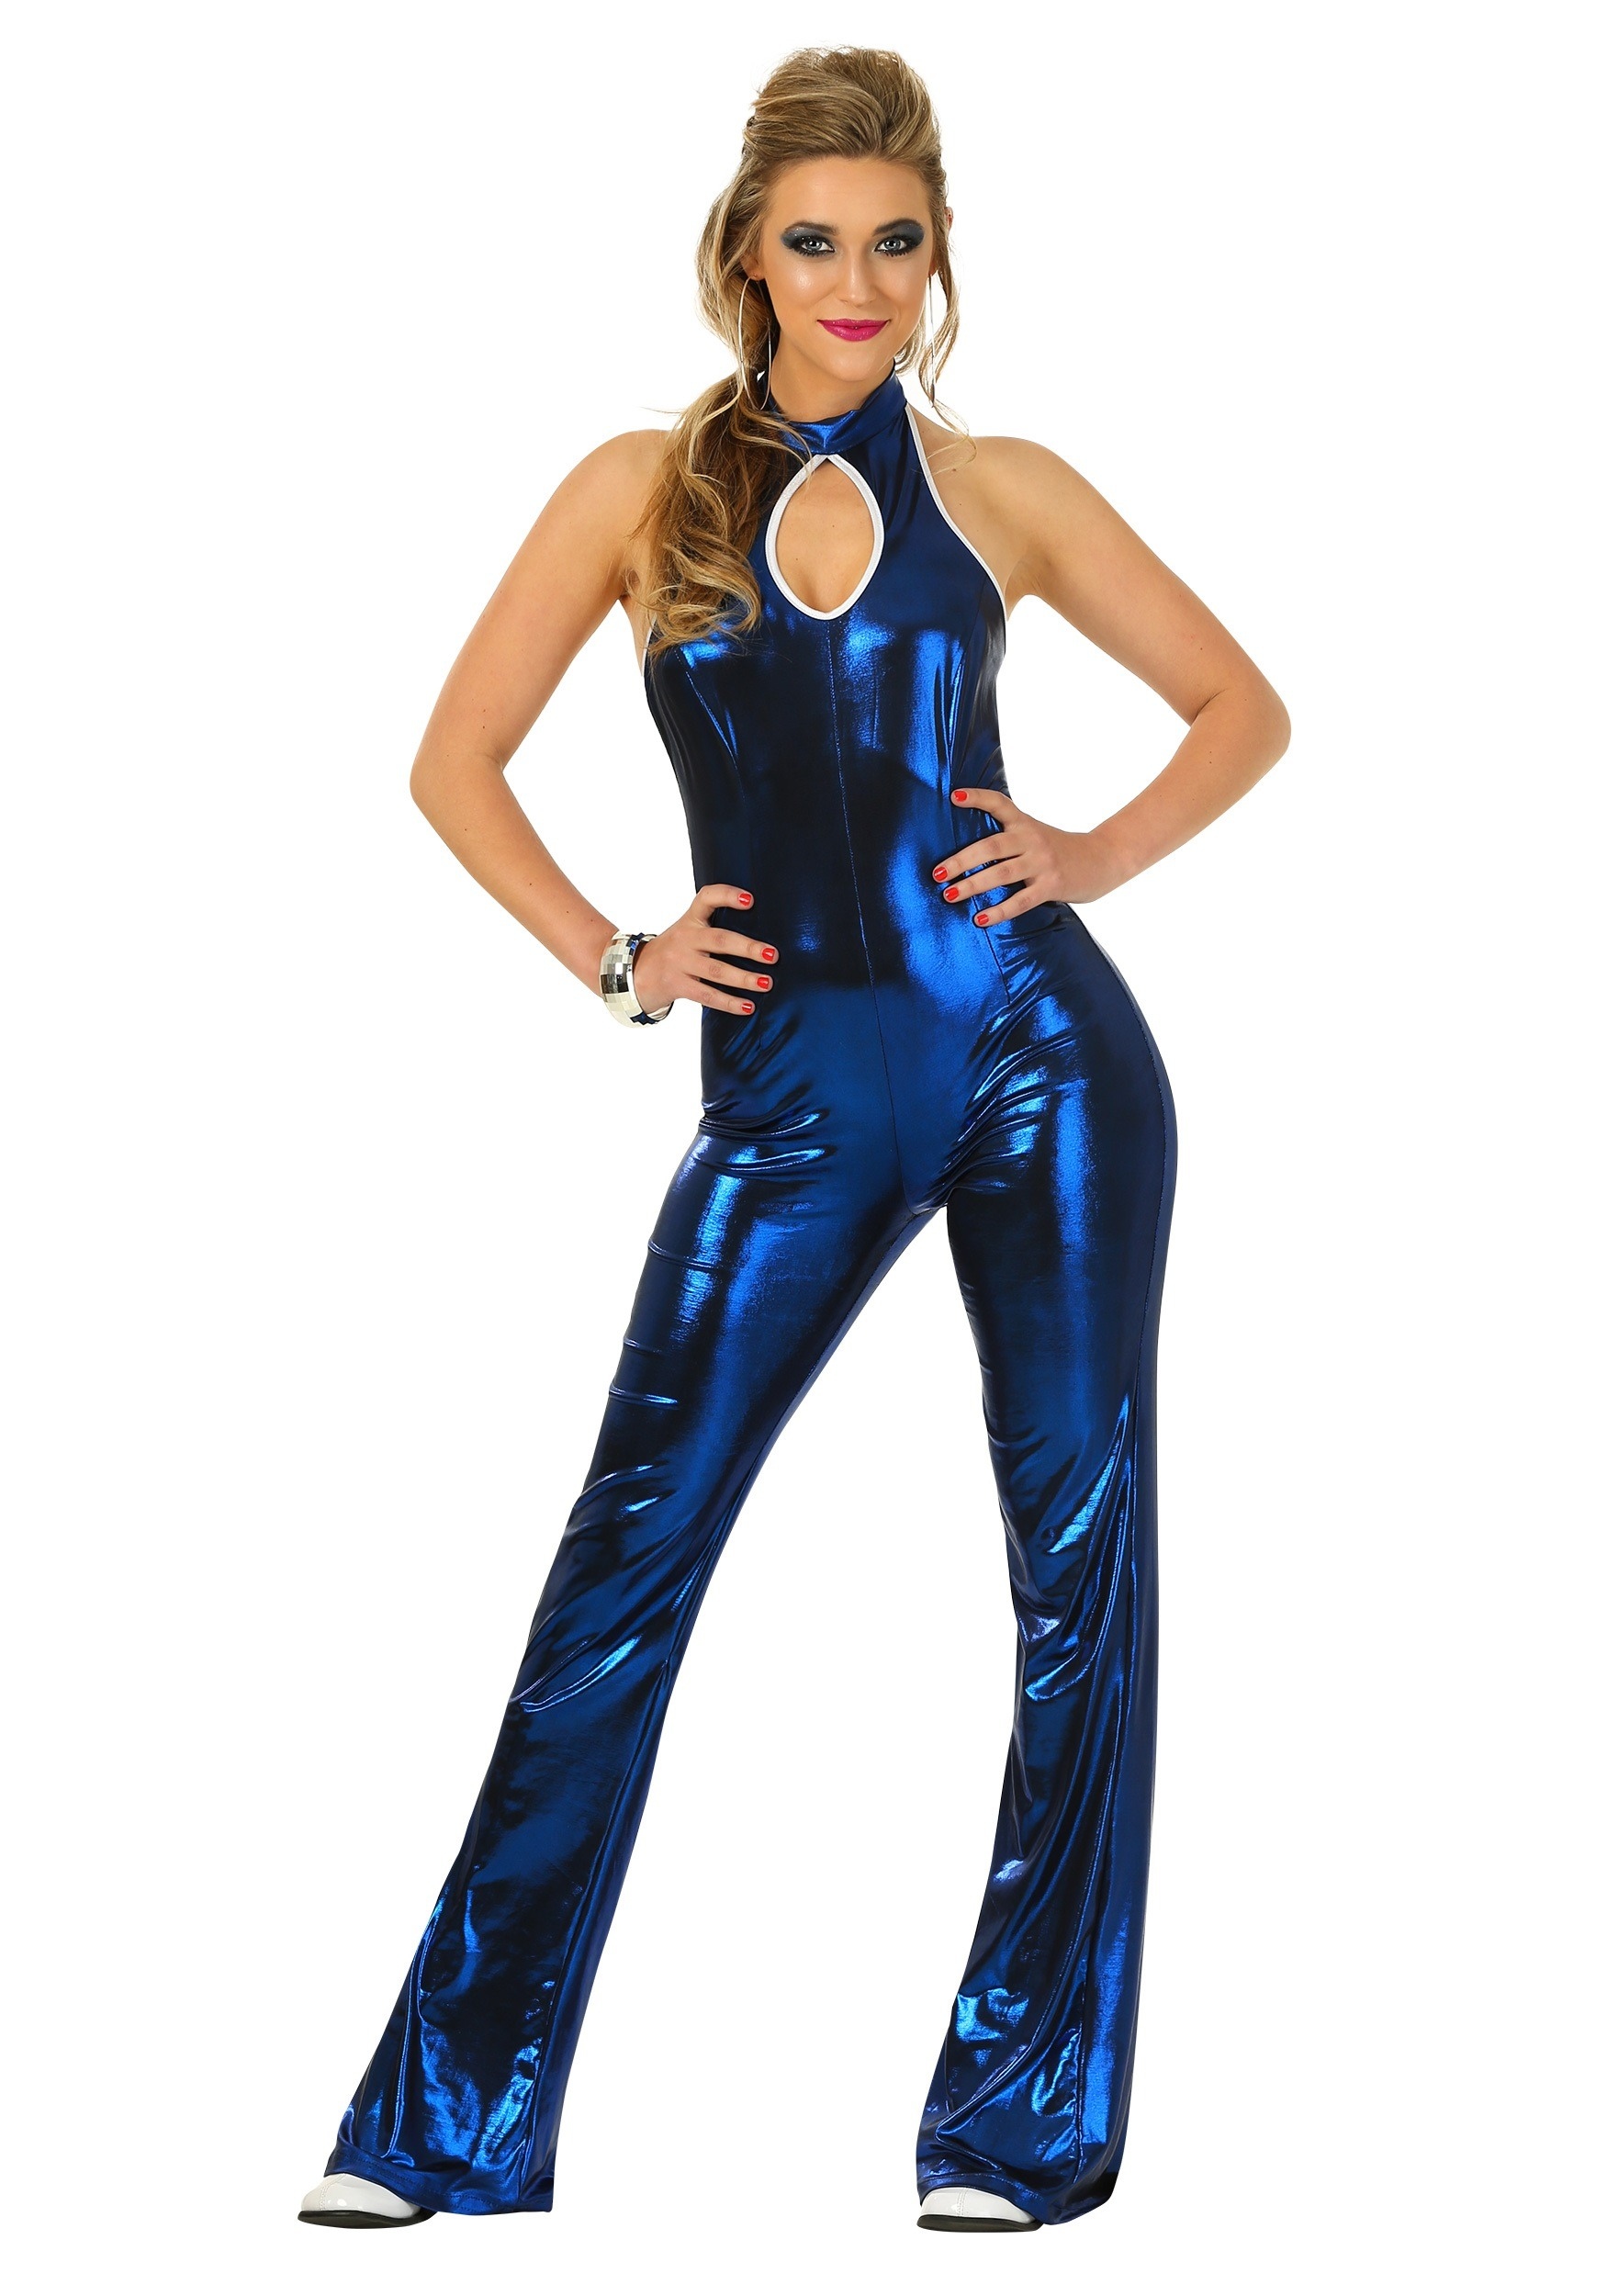 Jumper pants for women   jammer kit ideas for adults